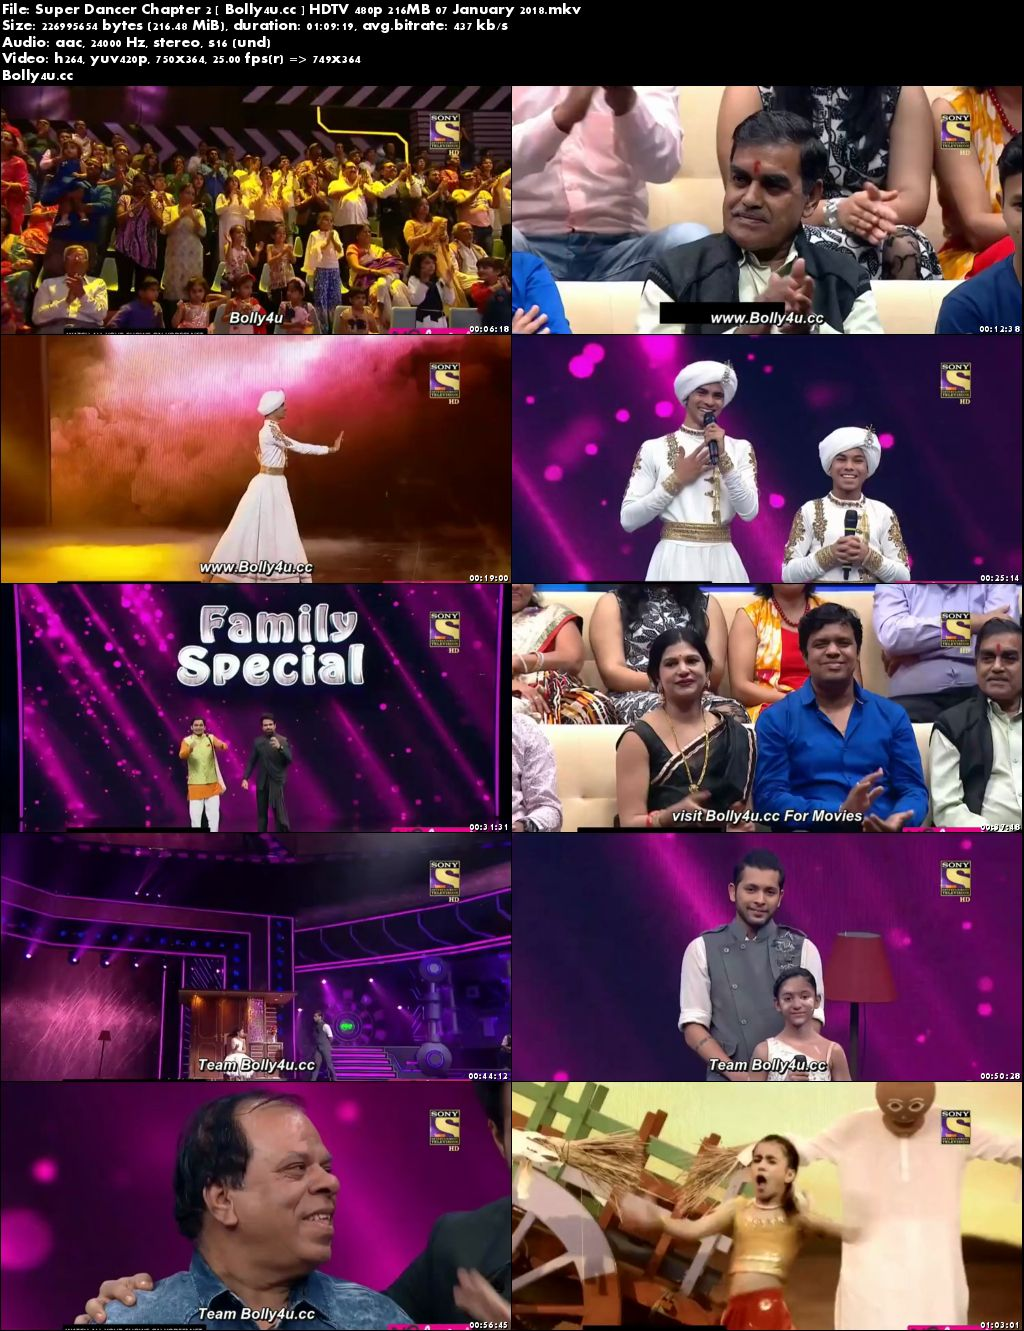 Super Dancer Chapter 2 HDTV 480p 200MB 07 January 2018 Download